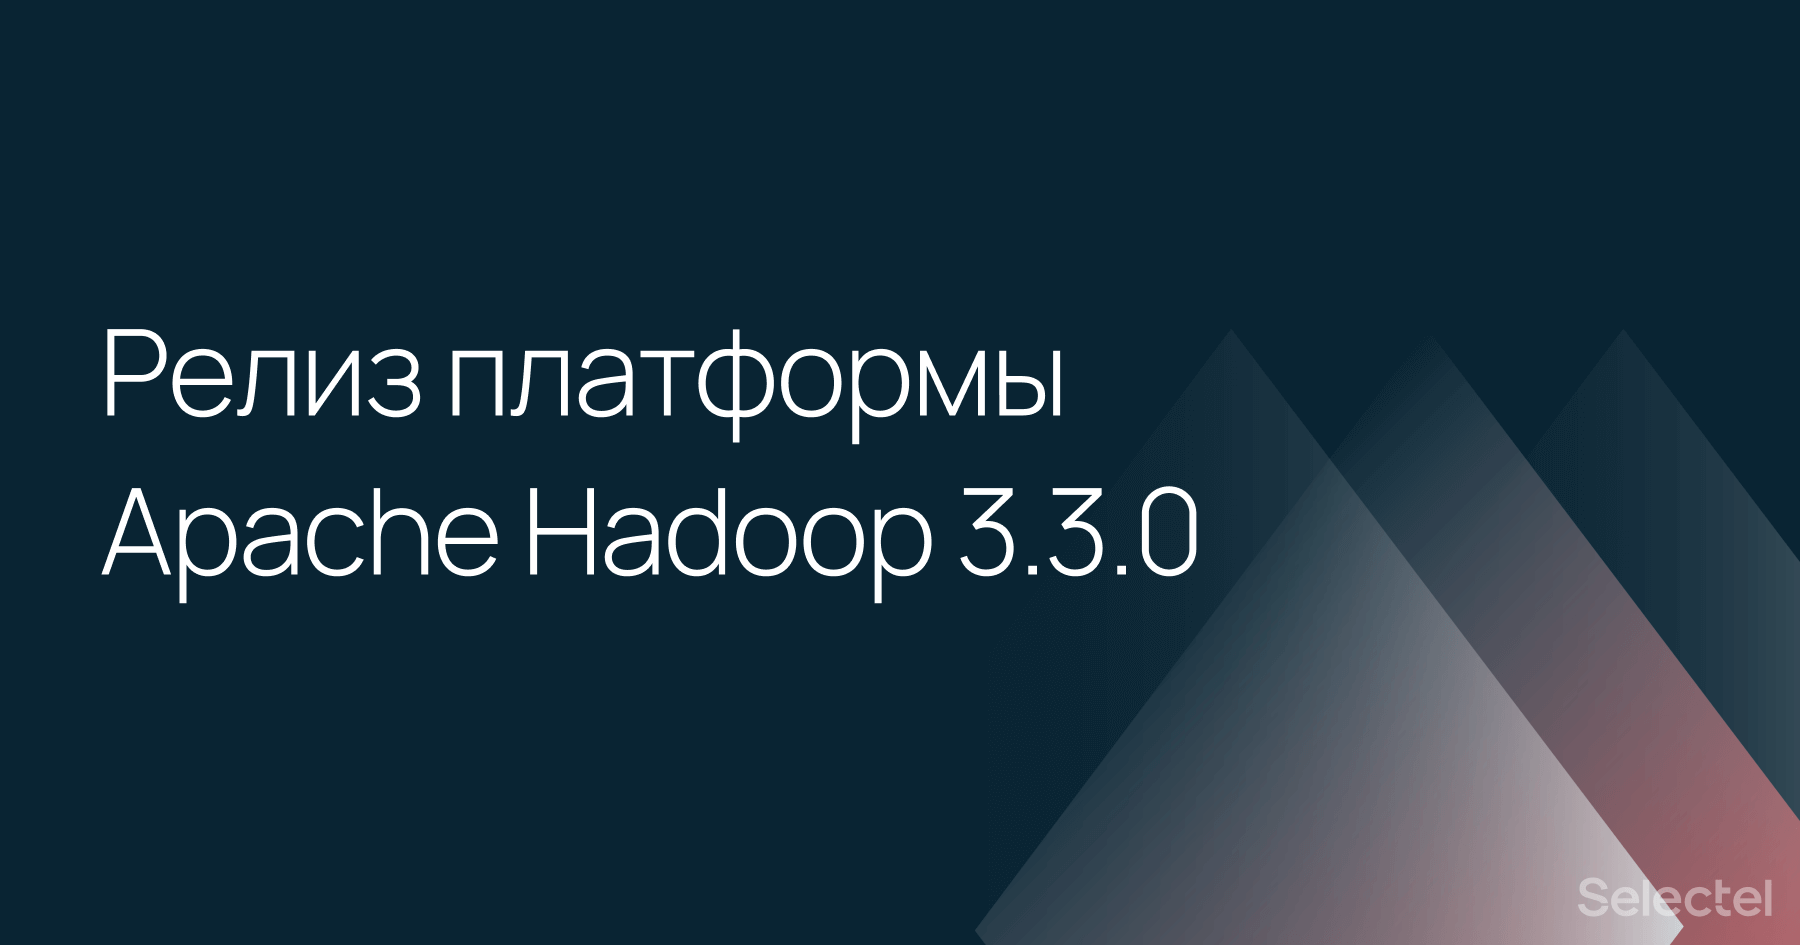 Apache Software Foundation опубликовала релиз платформы Apache Hadoop 3.3.0 - 1